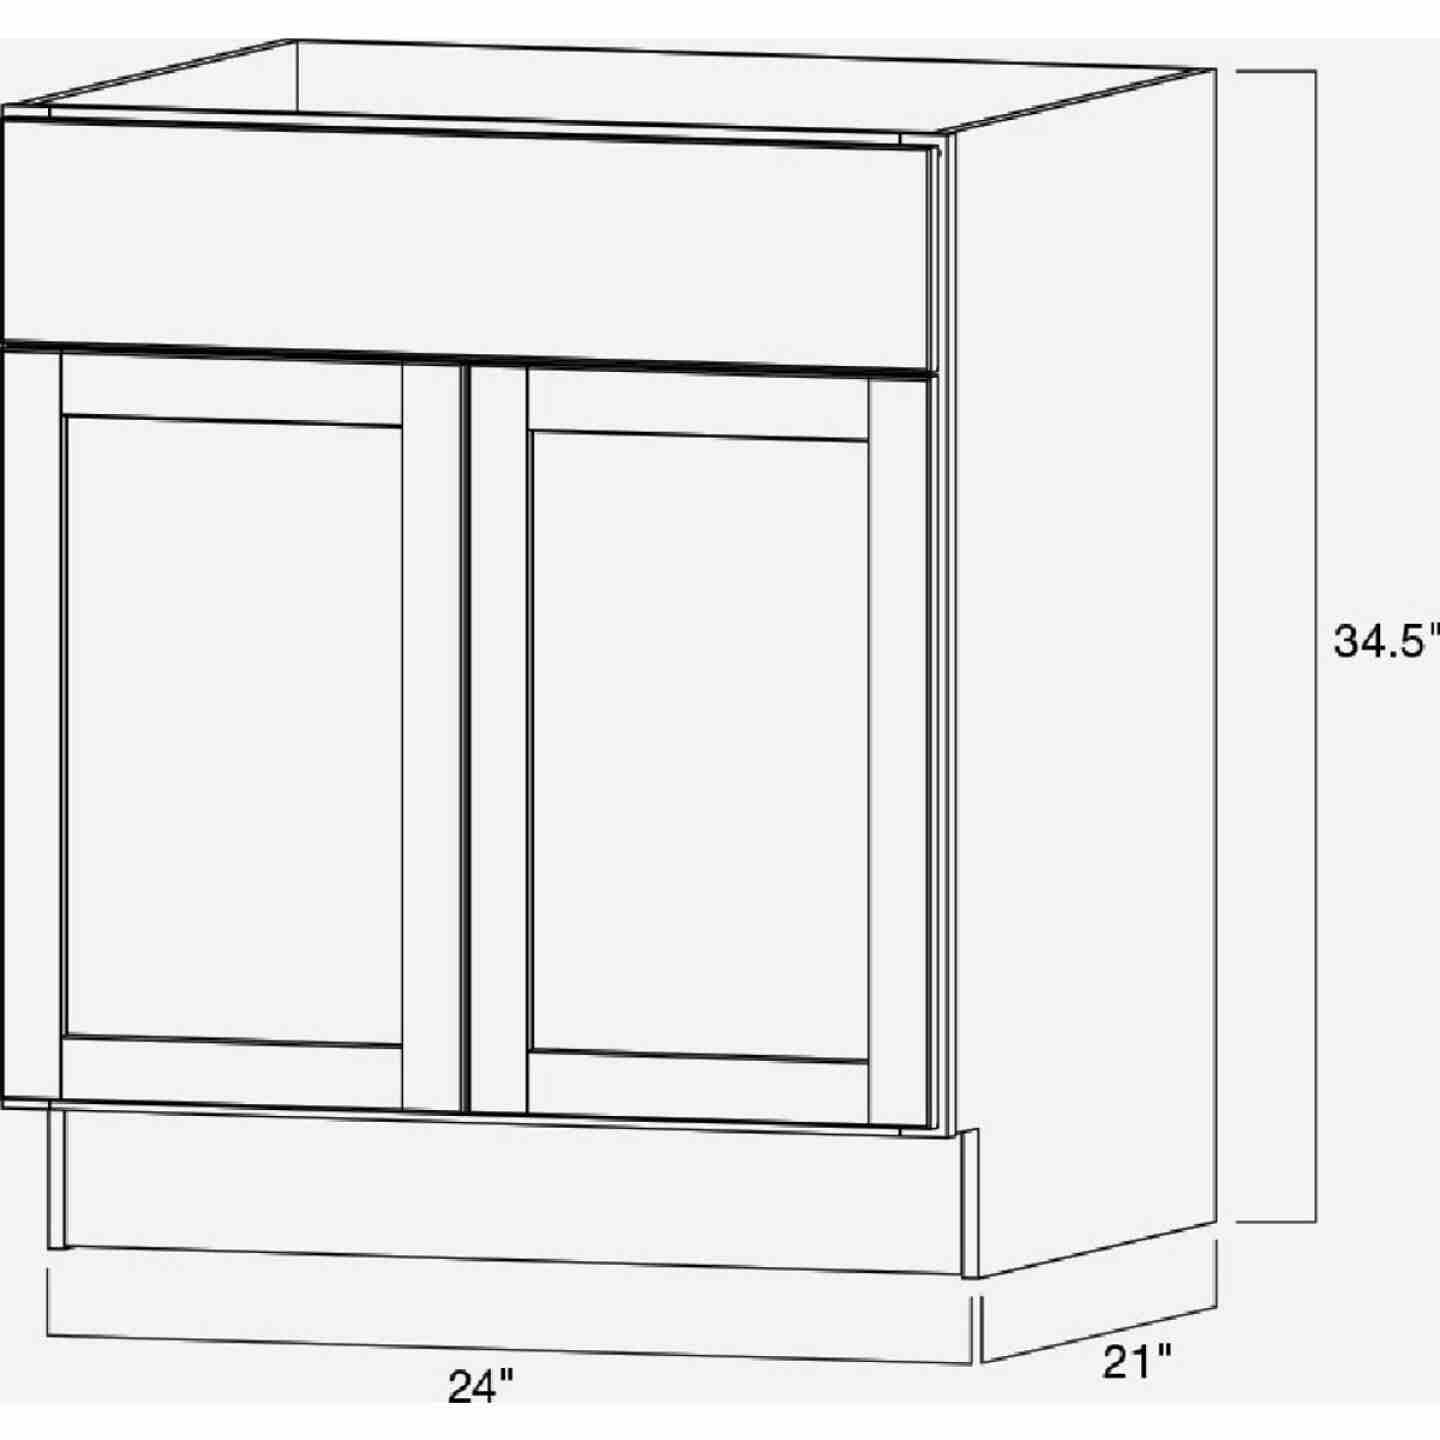 Continental Cabinets Andover Shaker 24 In. W x 34-1/2 In. H x 21 In. D White Vanity Base, 2 Door Image 5